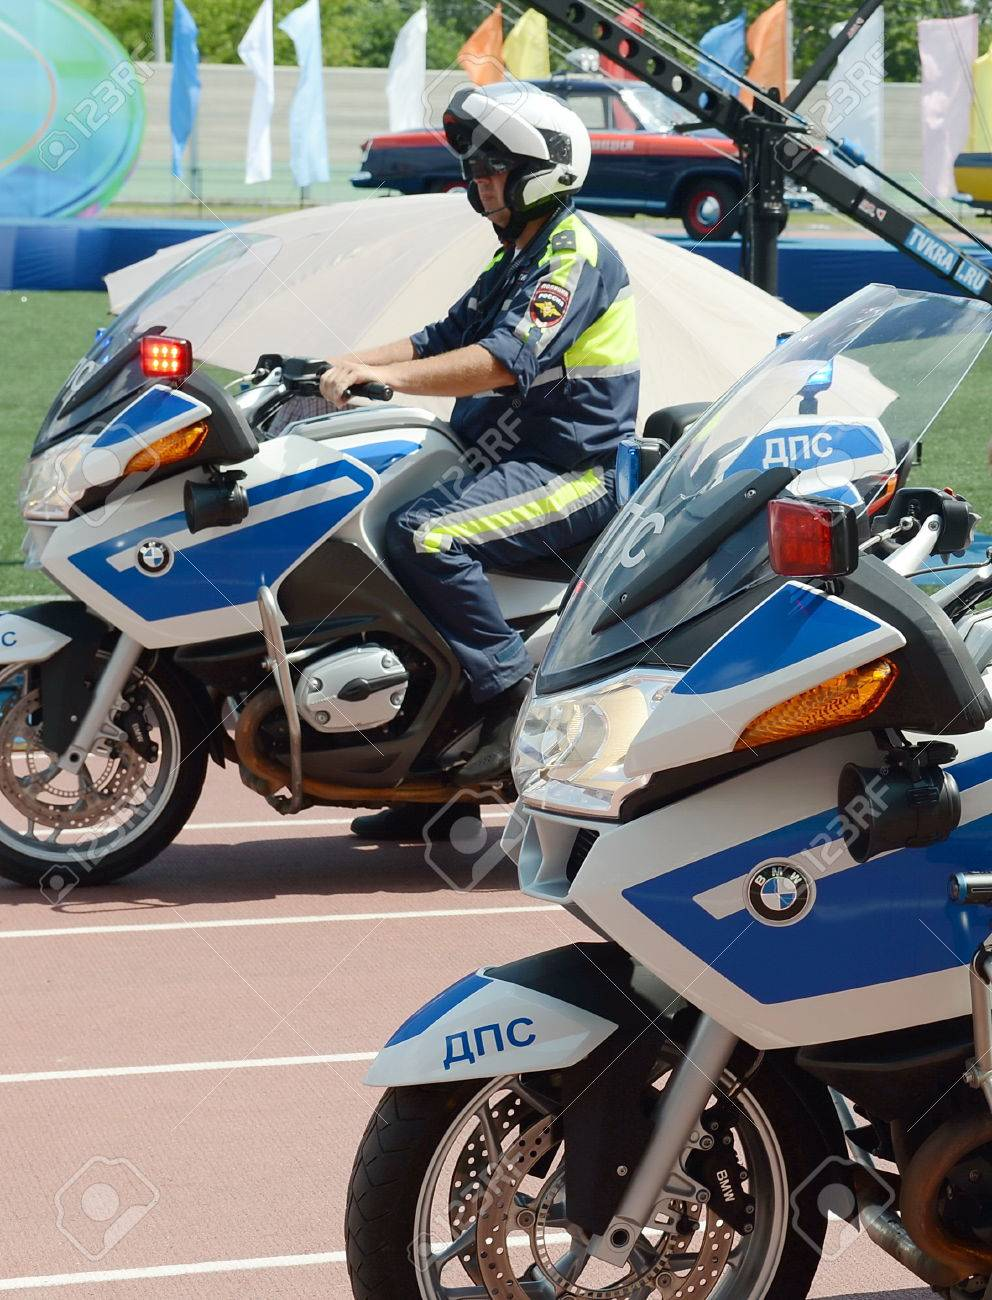 hight resolution of inspectors of traffic police on bmw motorcycles stock photo 75291855